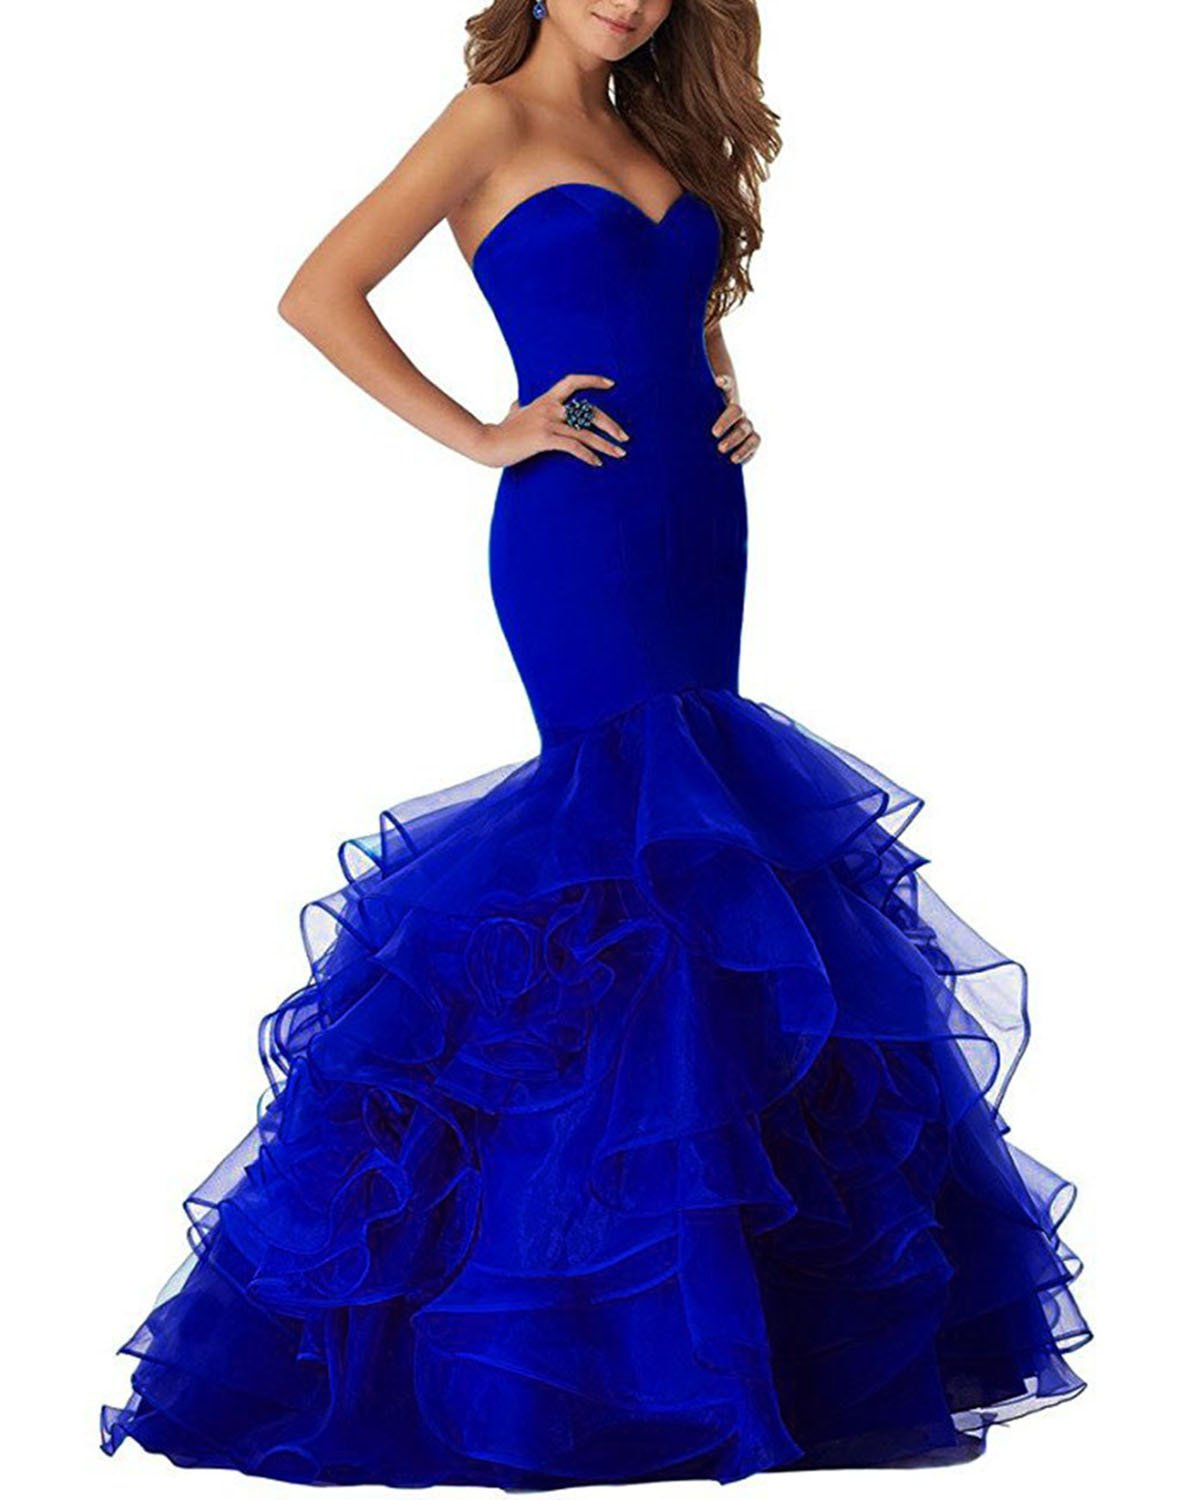 Udresses Long Mermaid Women Evening Party Dress Prom Gown UX010 Royal Blue 8